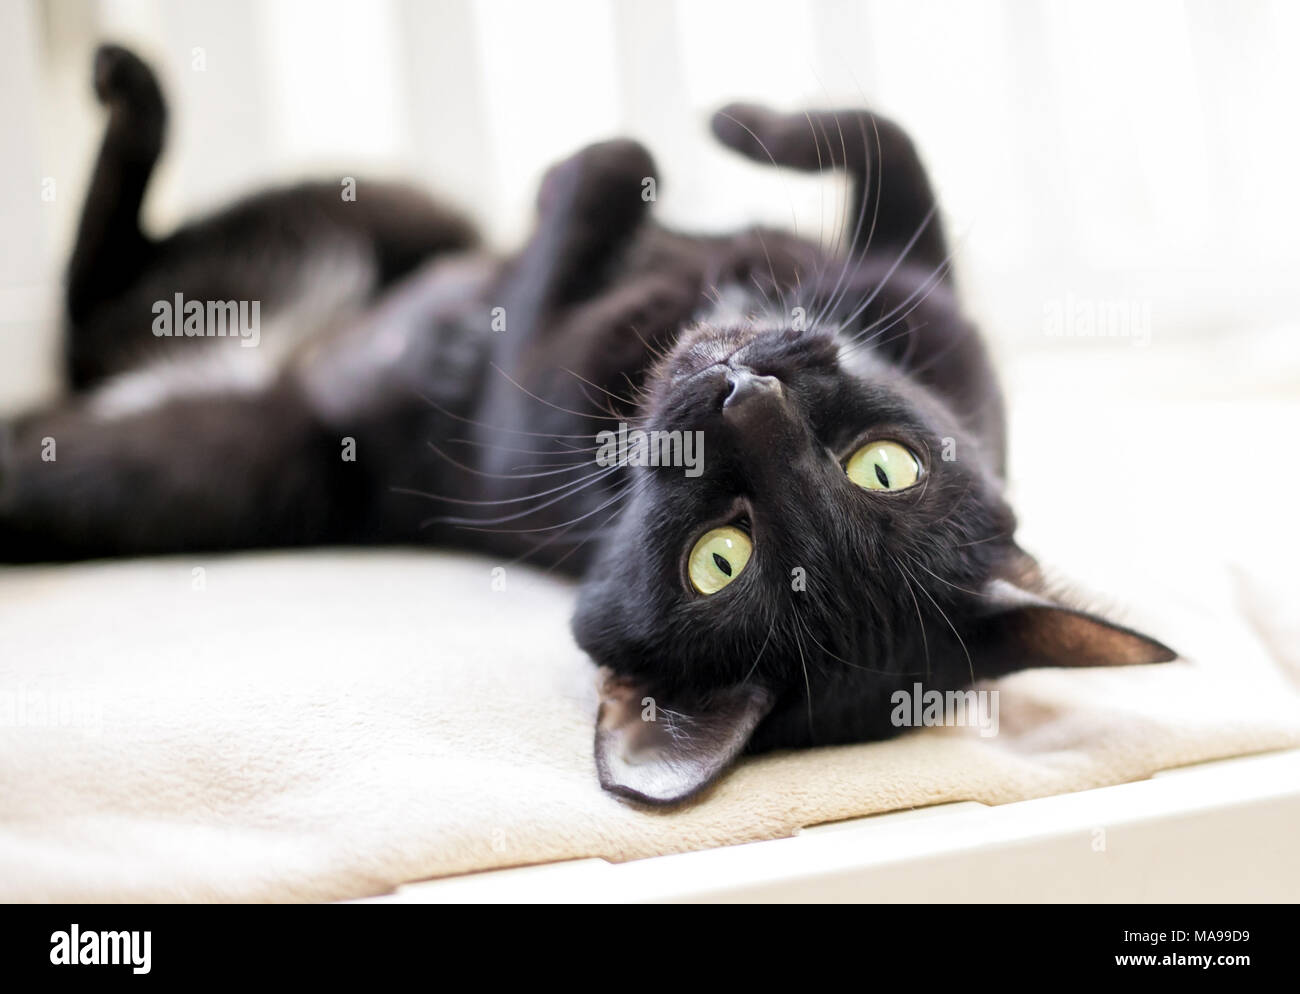 A black cat with yellow eyes lying upside down - Stock Image